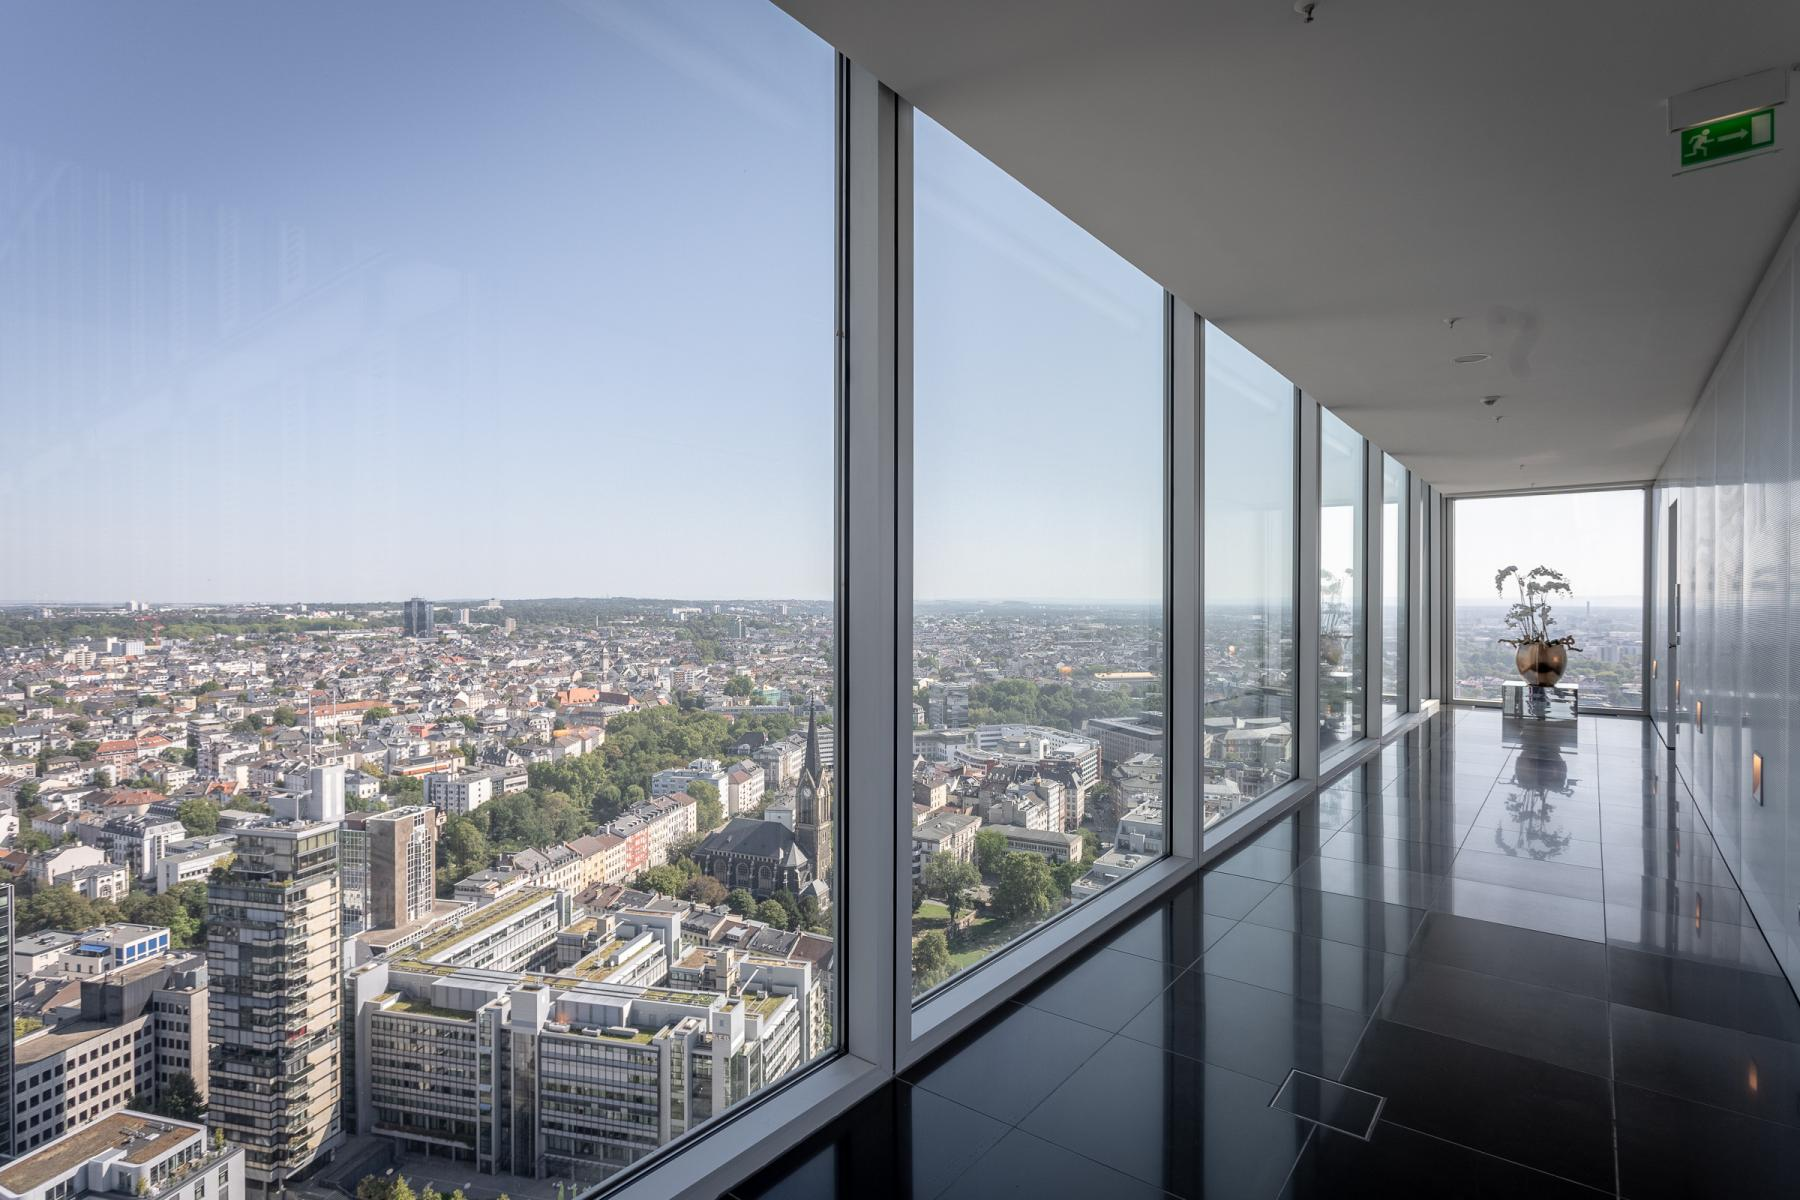 The view cannot get any better - rent your new office at Thurn-und-Taxis-Platz Frankfurt